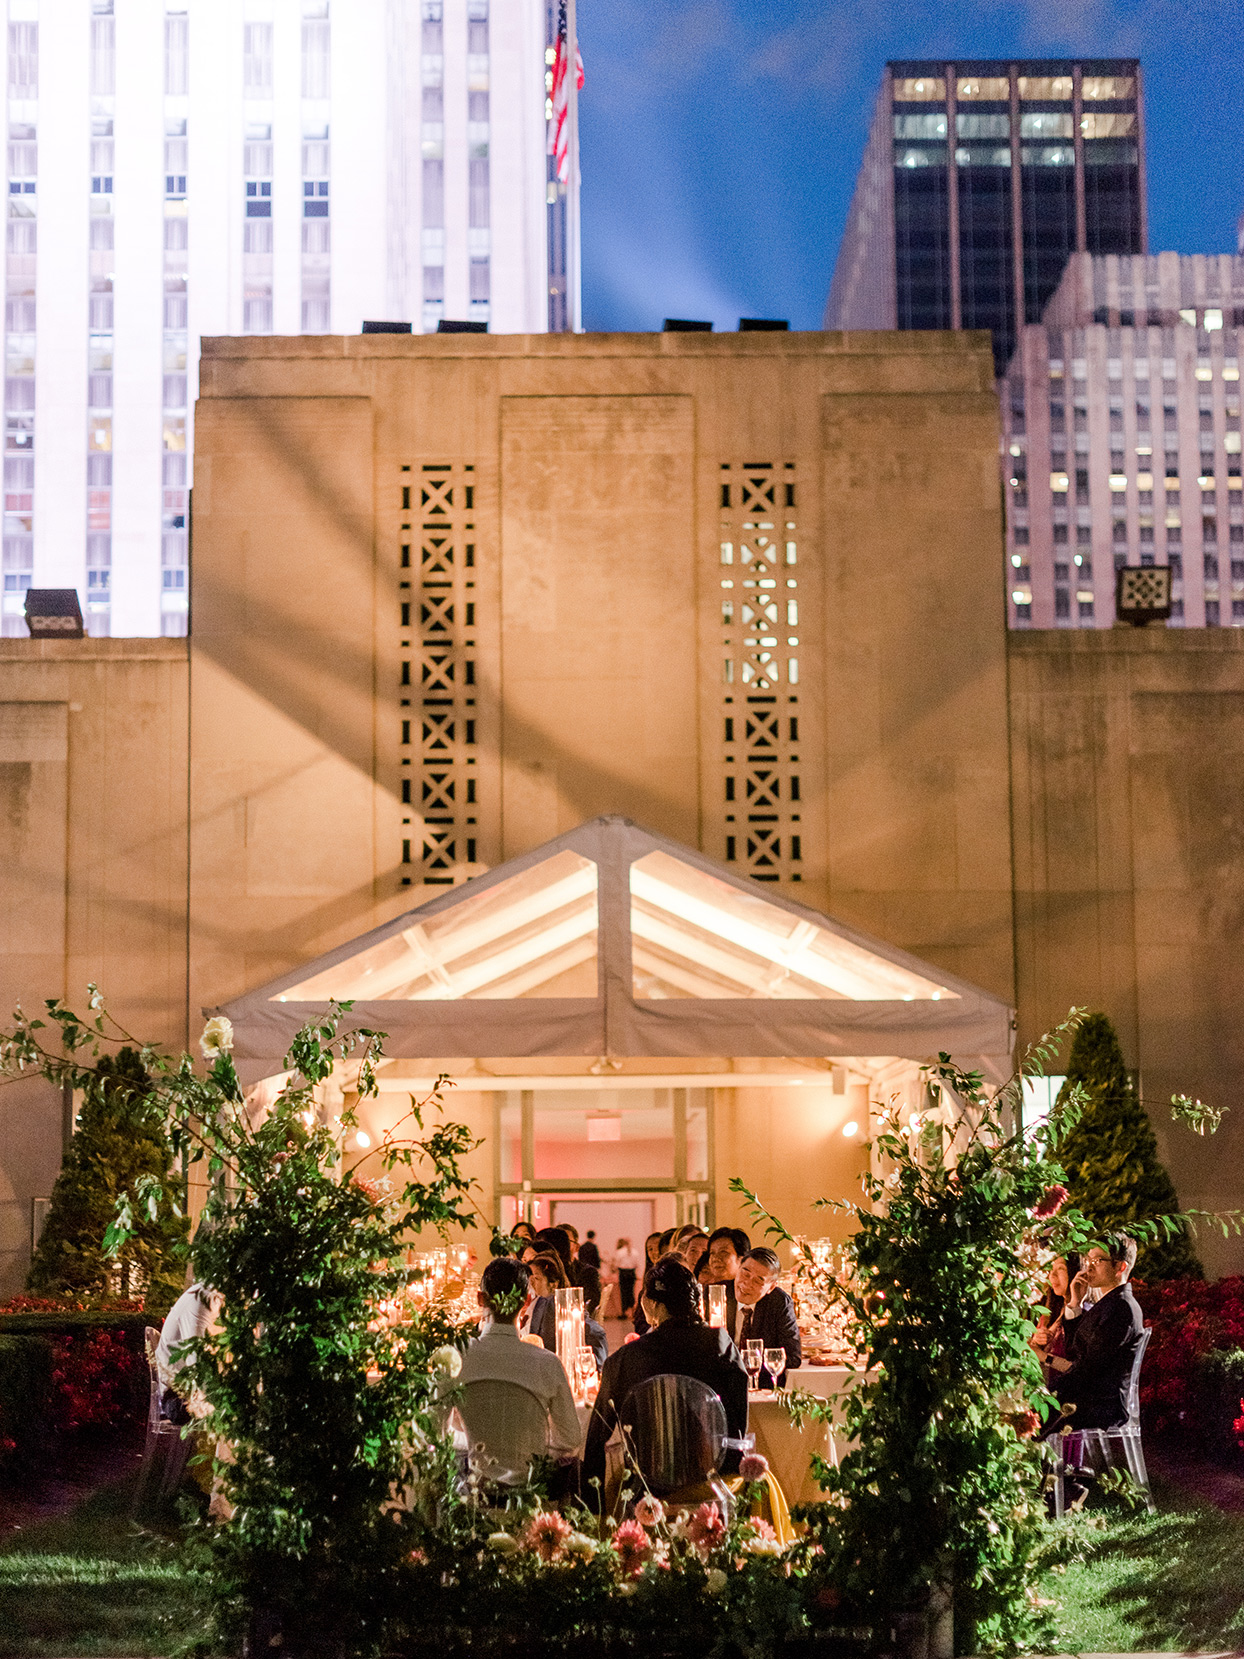 guests sitting under tent during night time dinner at round tables